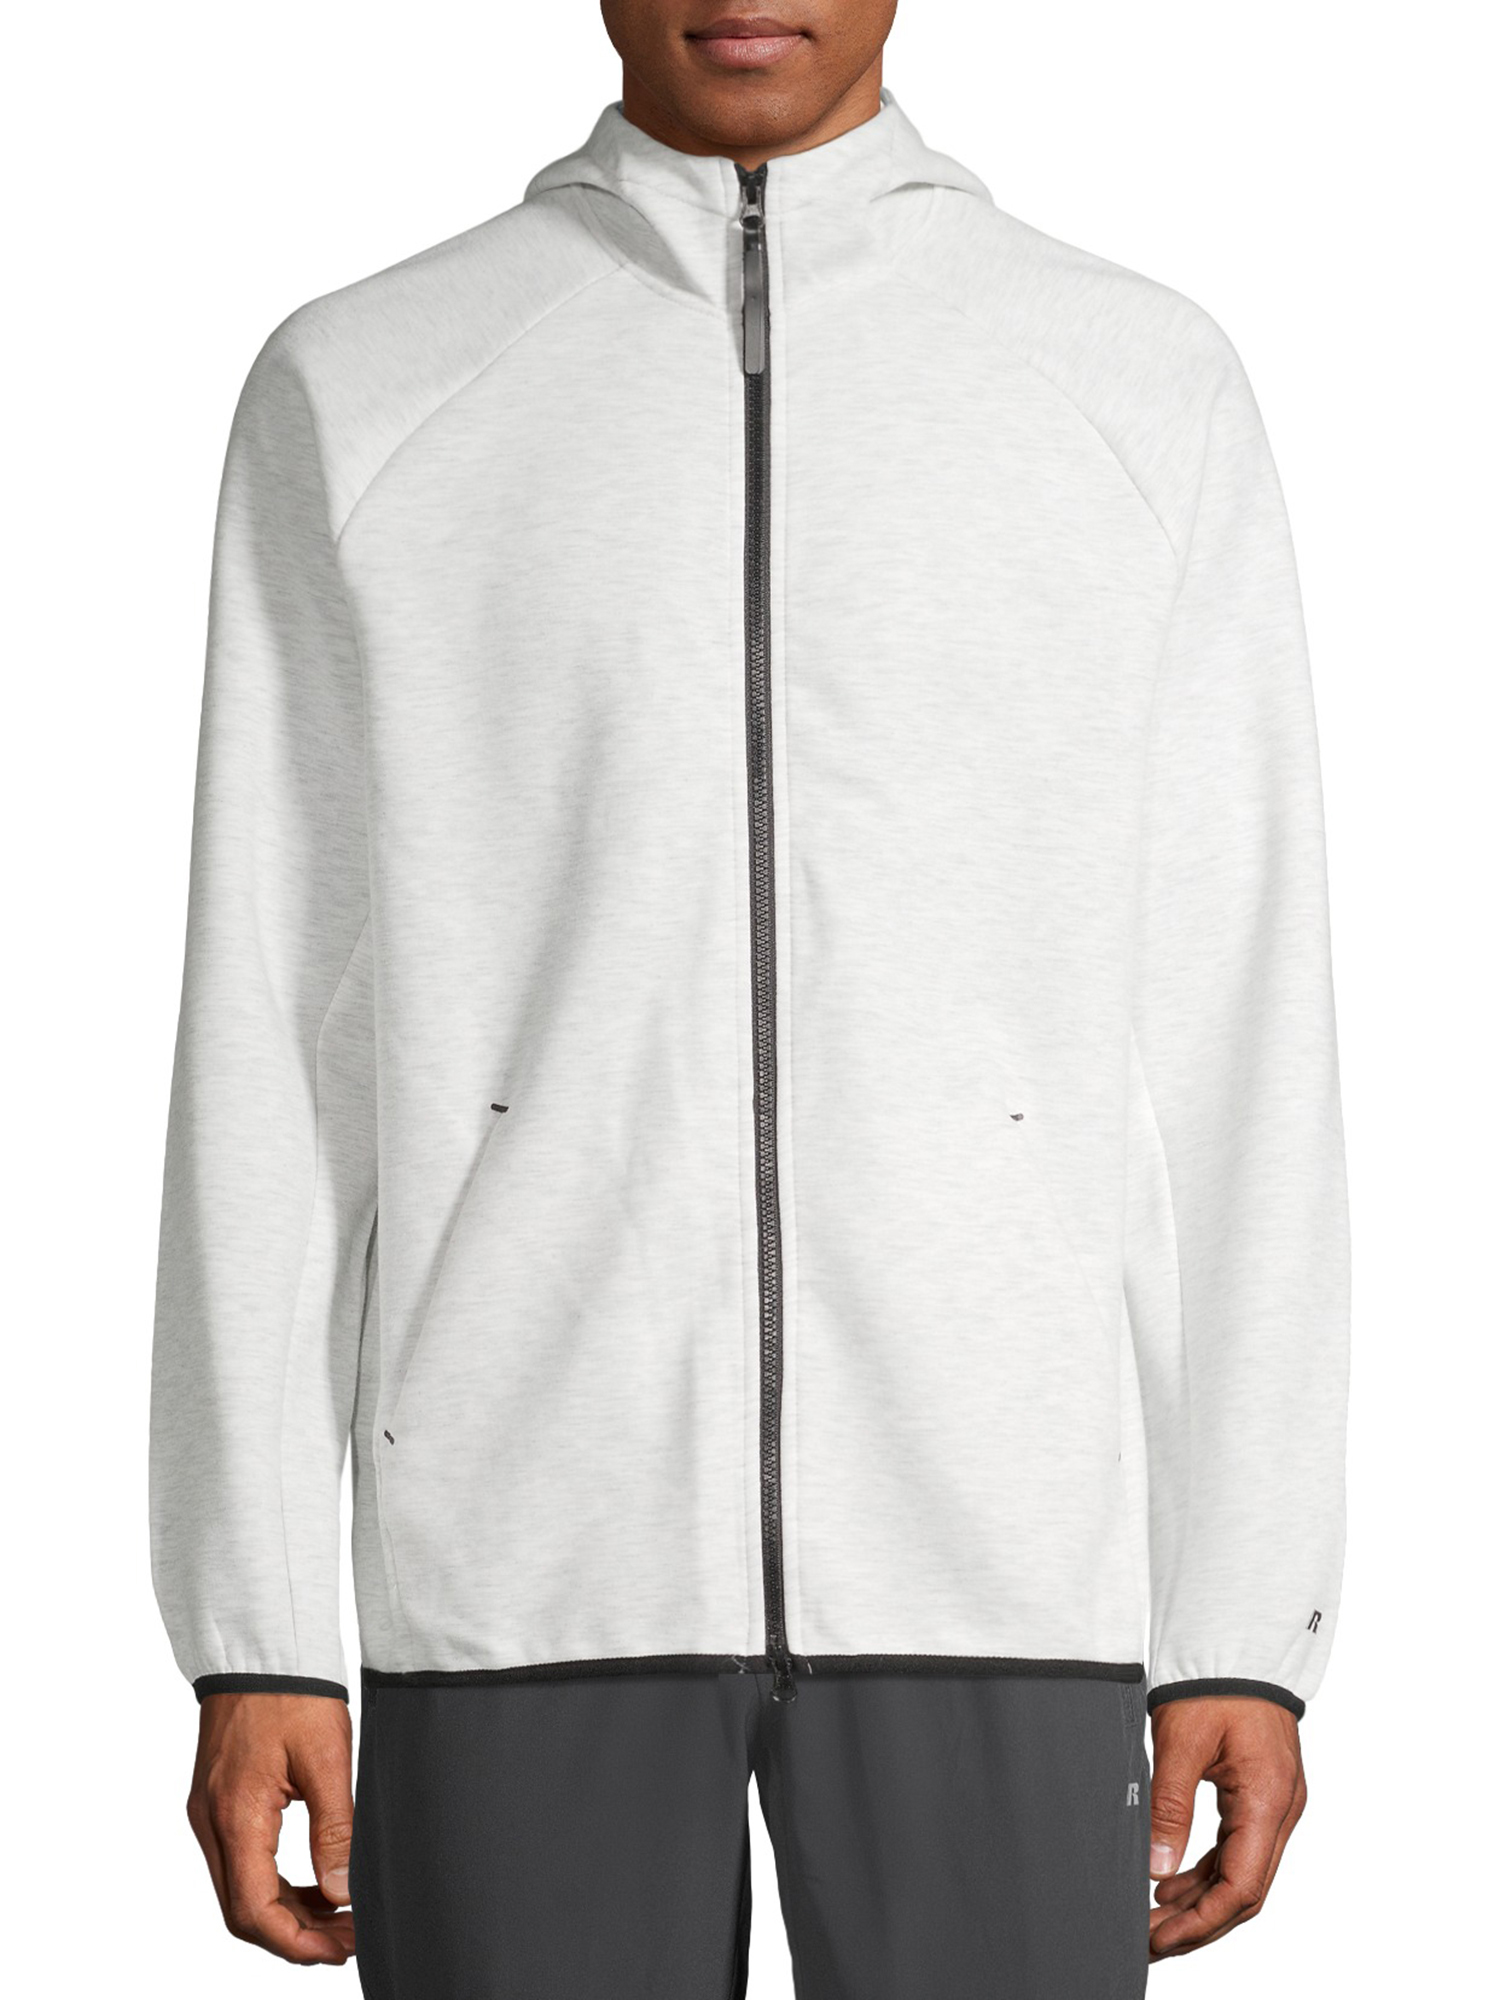 Russell Men's Active Fusion Knite Jacket White  Heather Size (M 38-40)